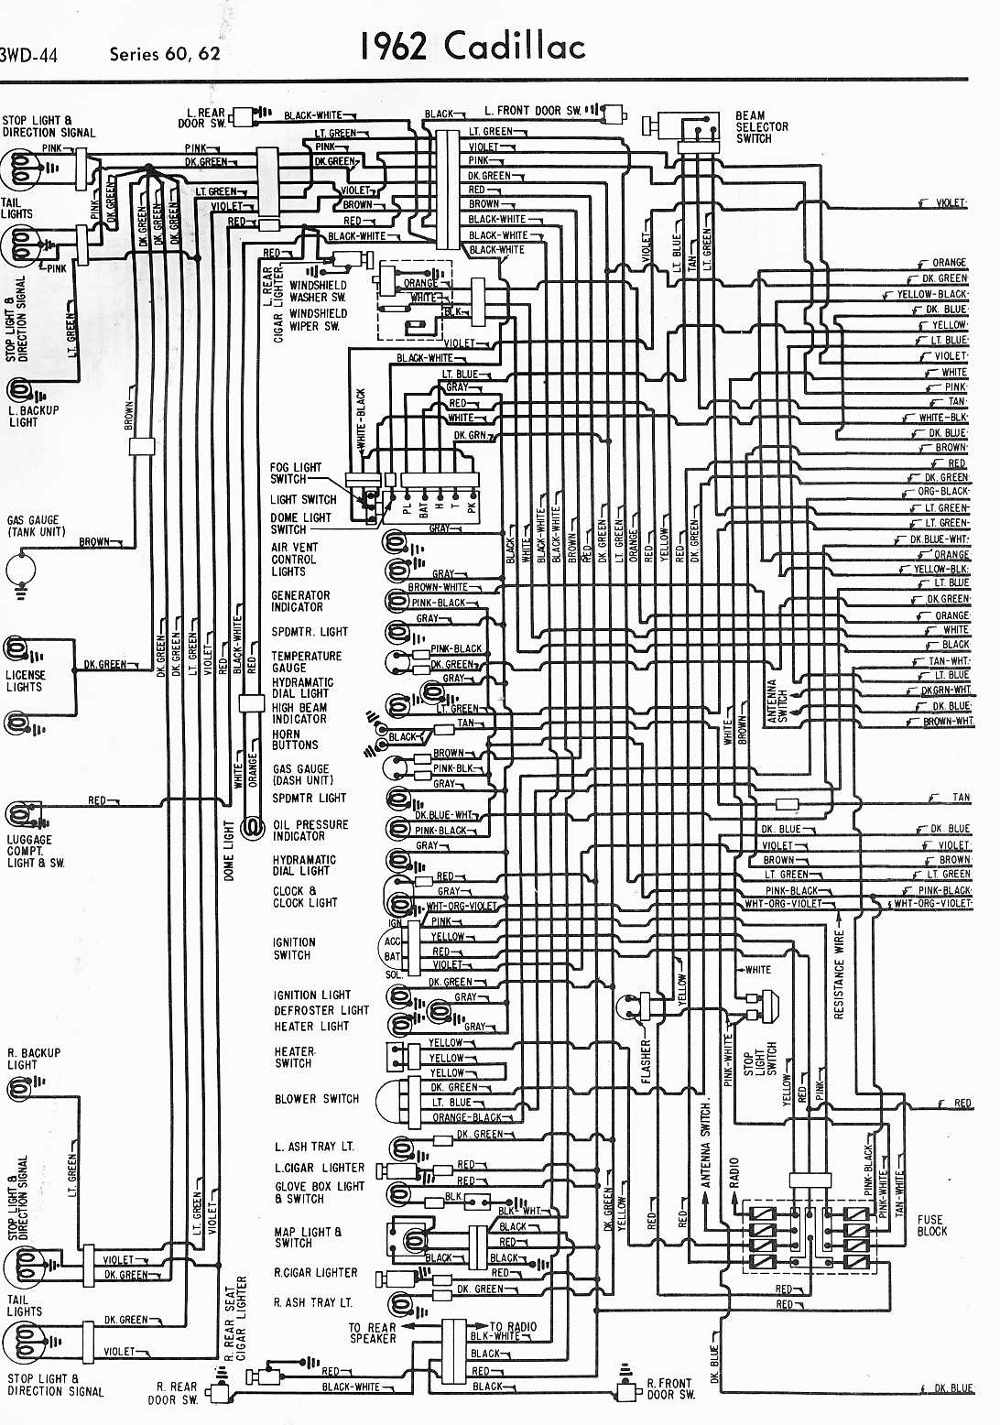 Wiring Diagrams Schematics 1962 Cadillac Series 60 And 62 Part 1